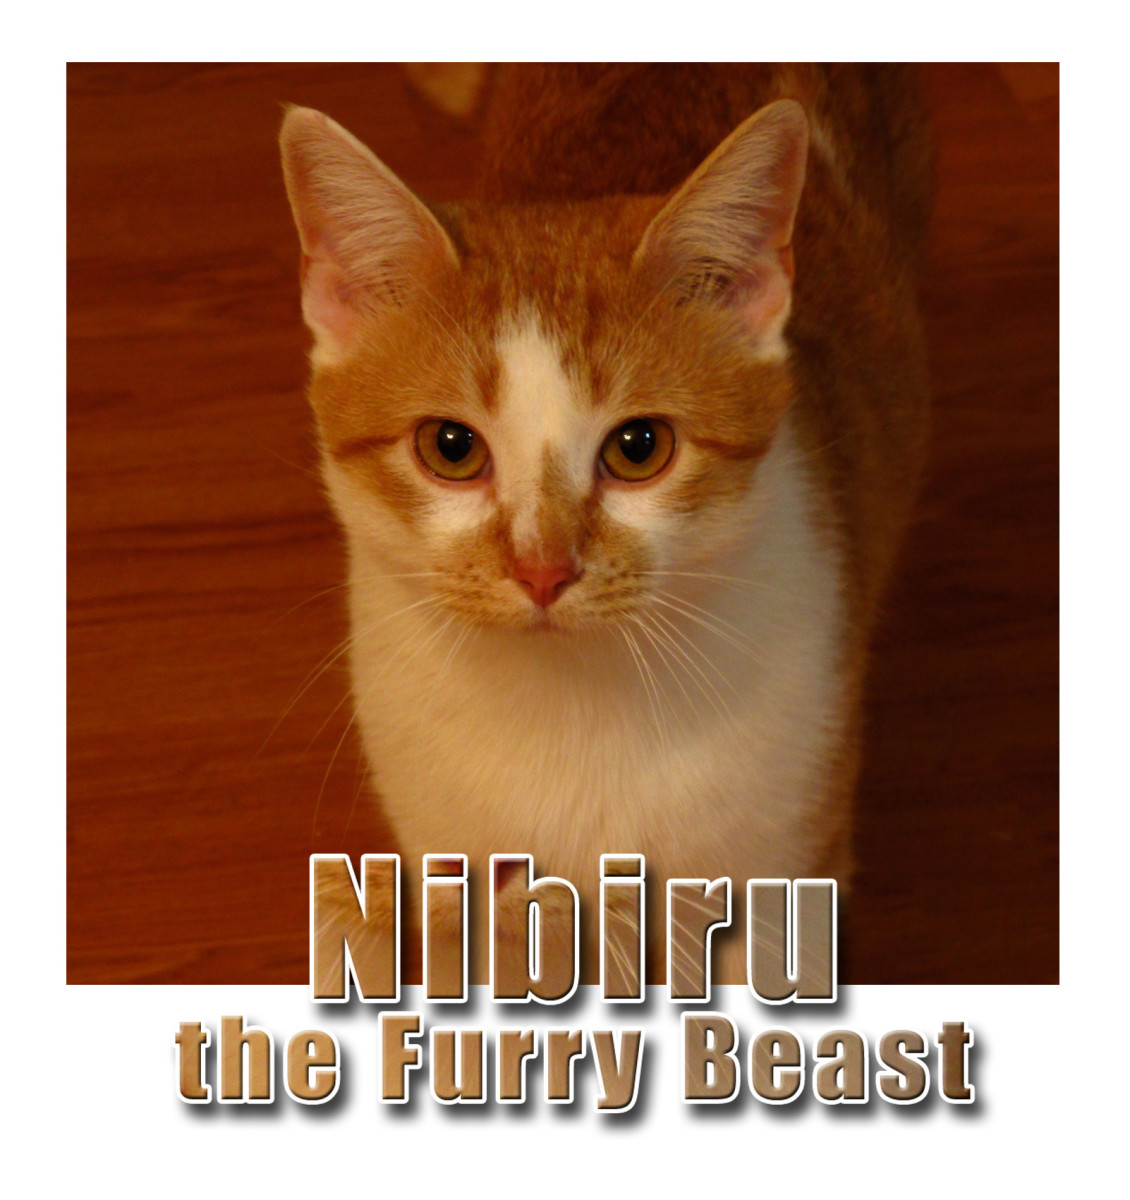 Nibiru is a furry beast and also the destroyer of worlds.